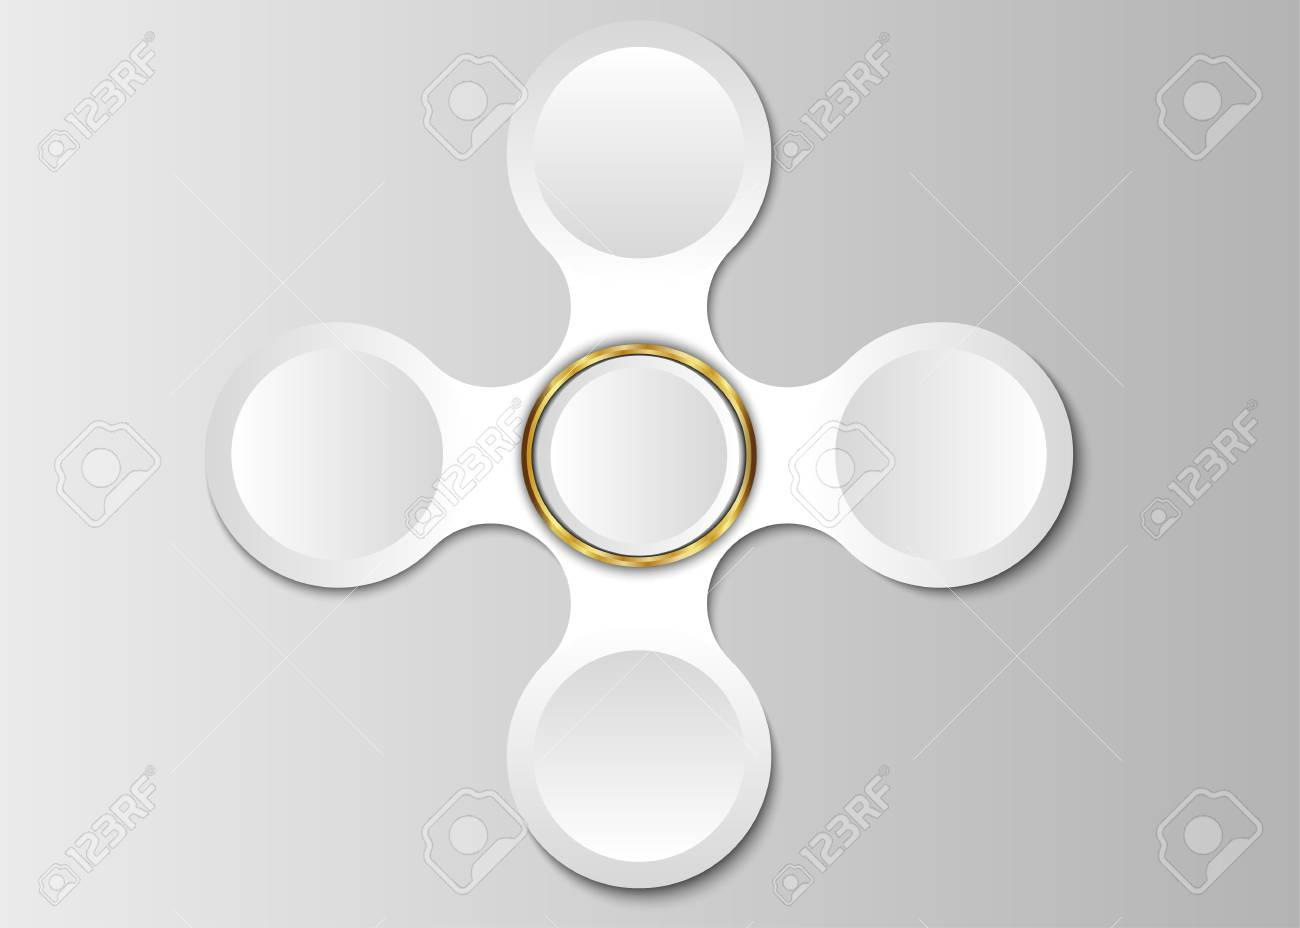 Circle Template, Circle Label Blank For Design Or Text. Royalty Free ...